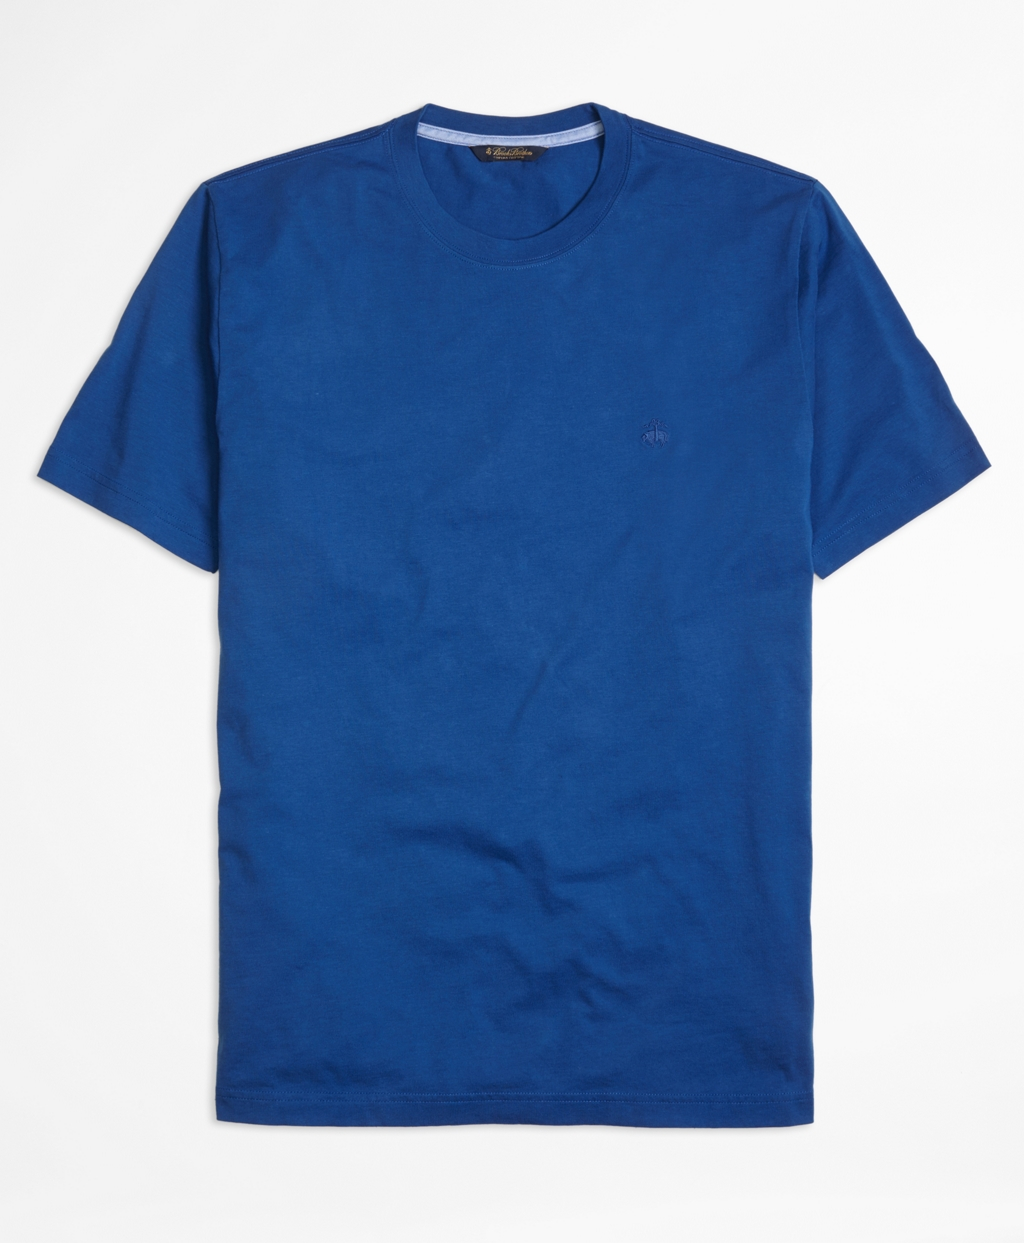 Brooks brothers supima cotton tee shirt in blue for men for Supima cotton dress shirts